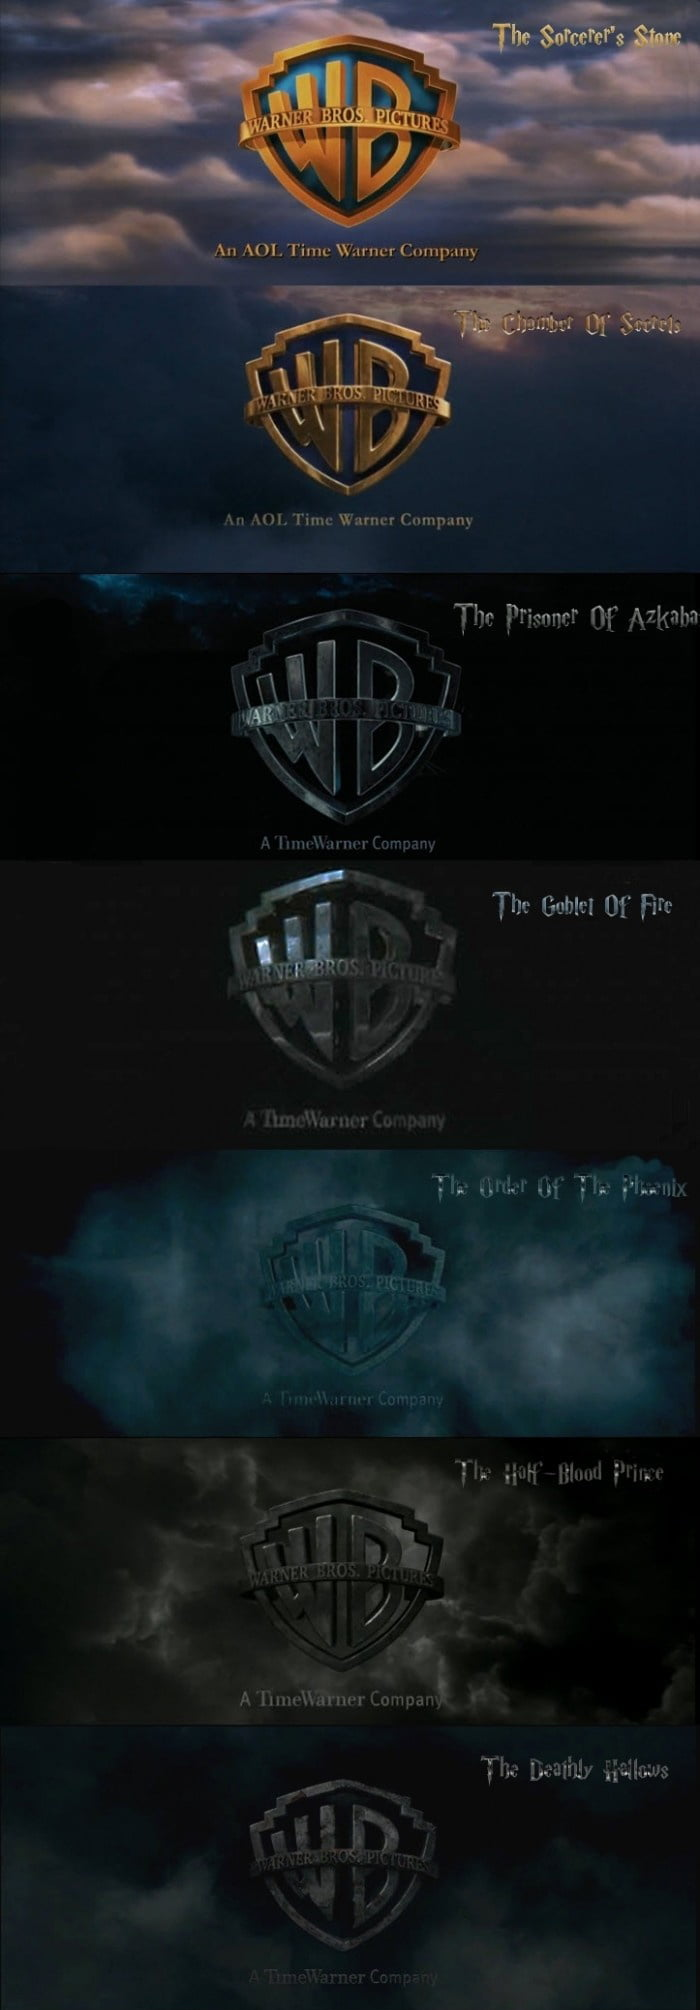 The best Warner Bros. logo evolution in a film series.